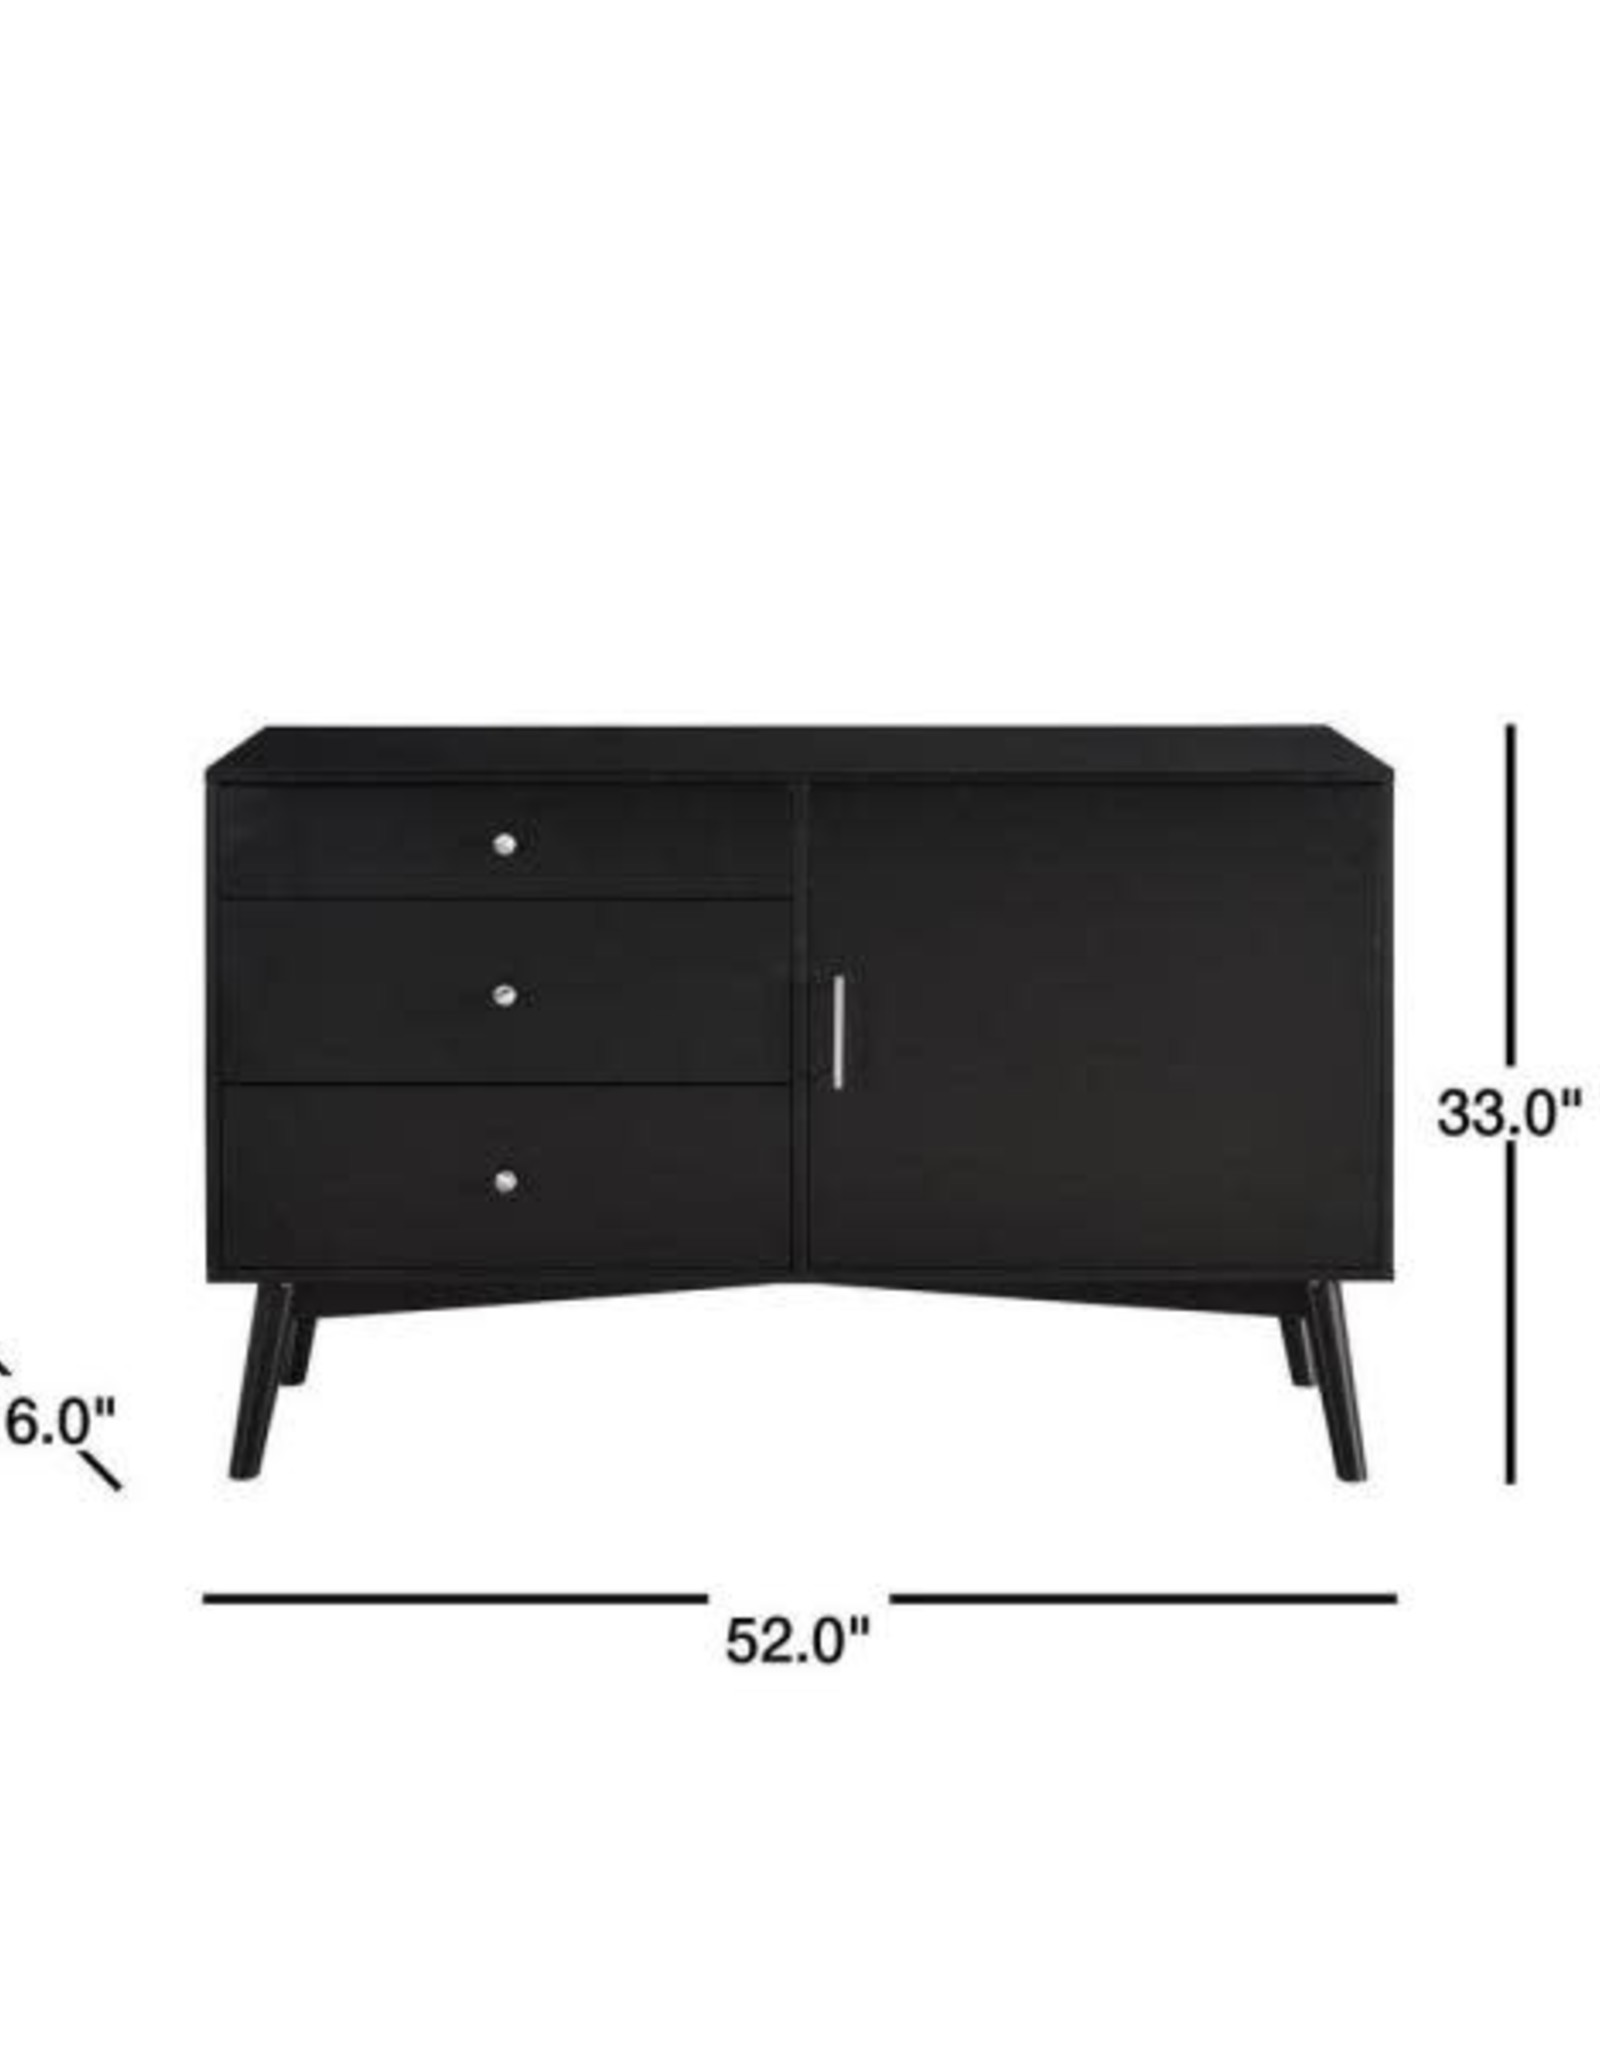 Walker Edison Furniture Company 52 in. Black Composite TV Stand with 3 Drawer Fits TVs Up to 55 in. with Doors